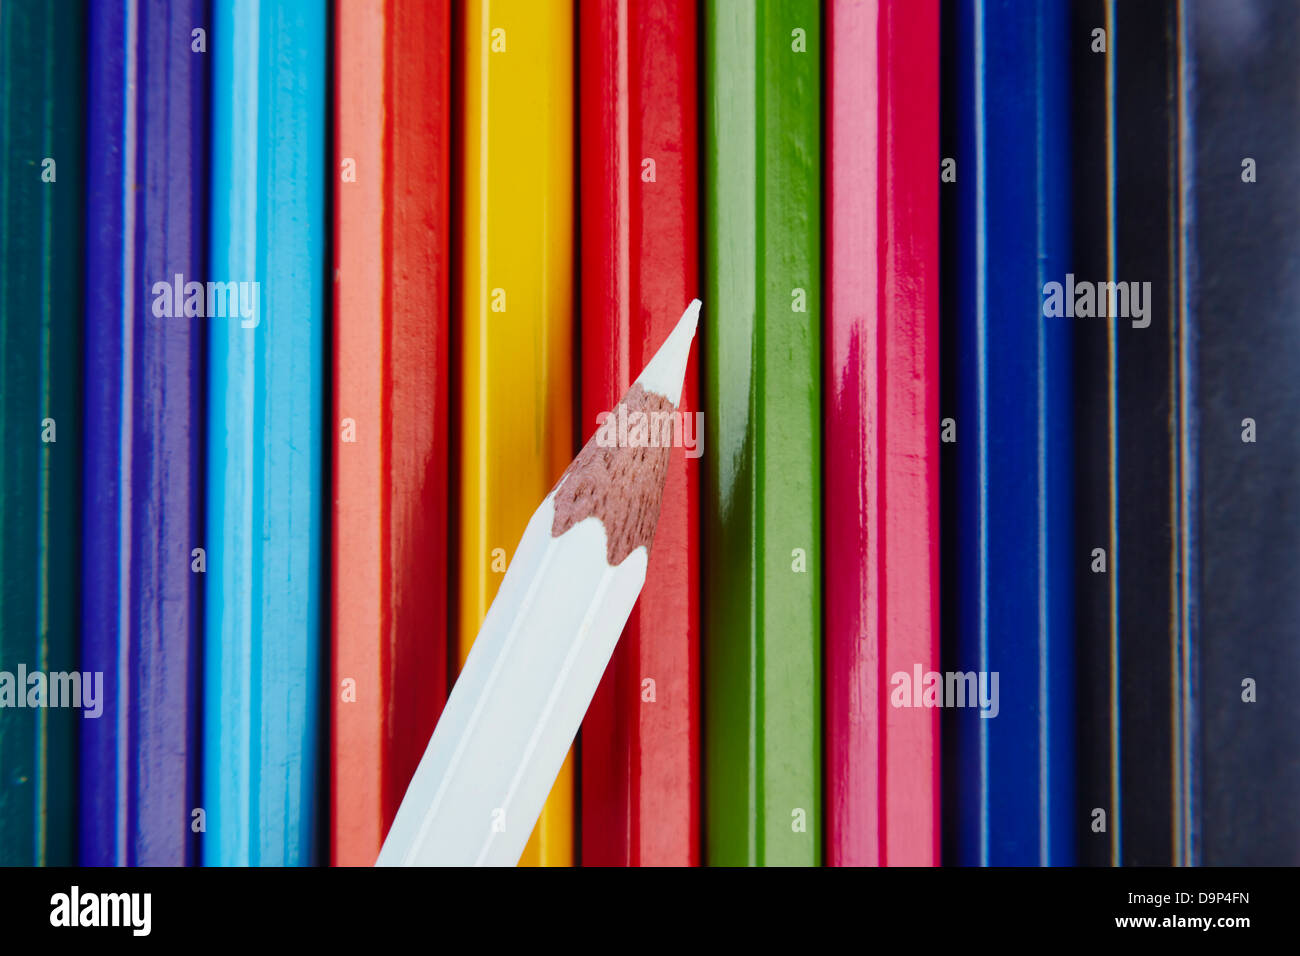 One white colored pencil on top of the rest - Stock Image